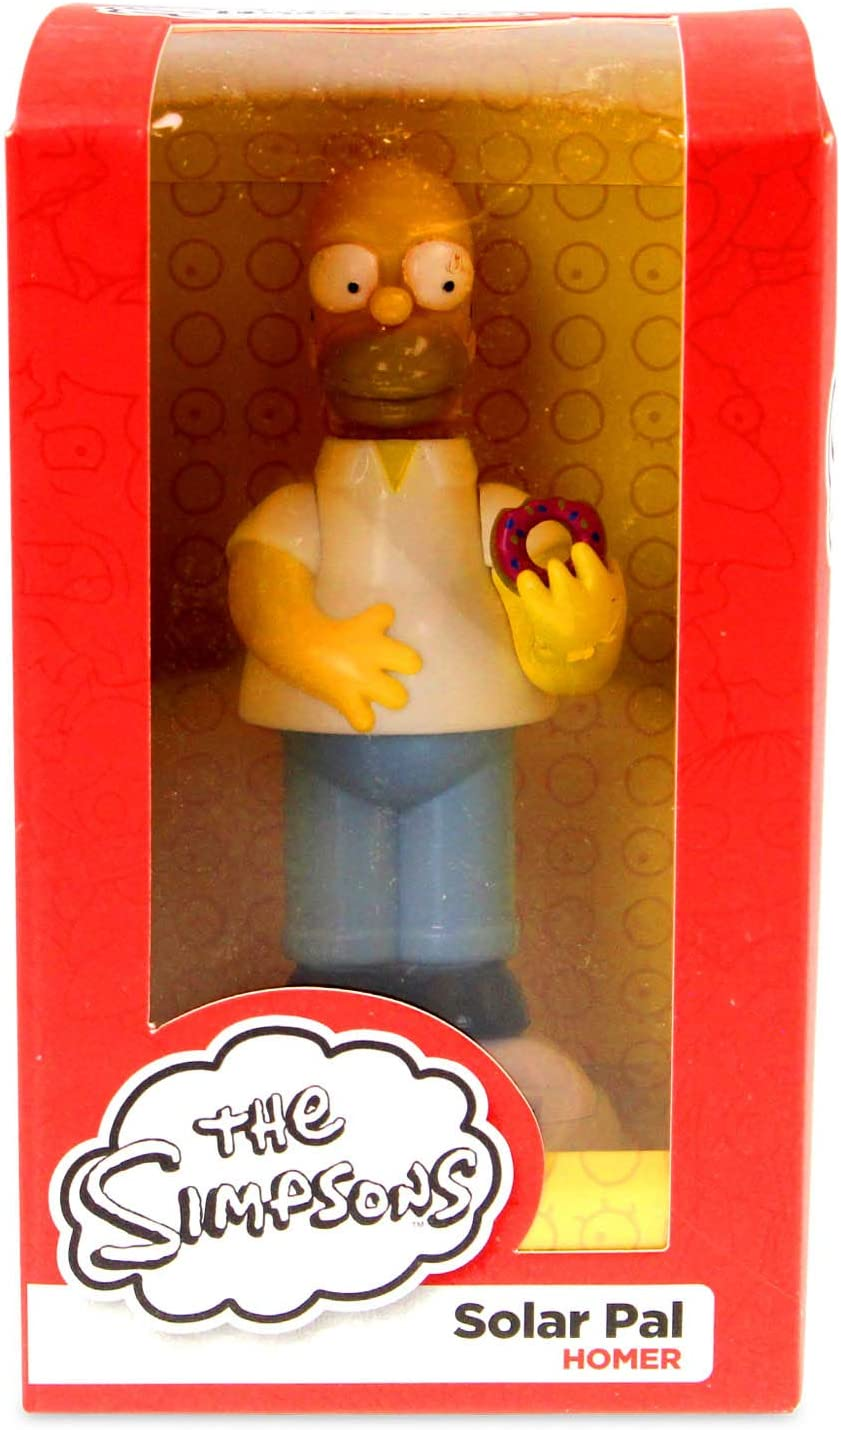 The Simpsons Mini Collectables ONE SUPPLIED you choose Aprrox 7-10cm